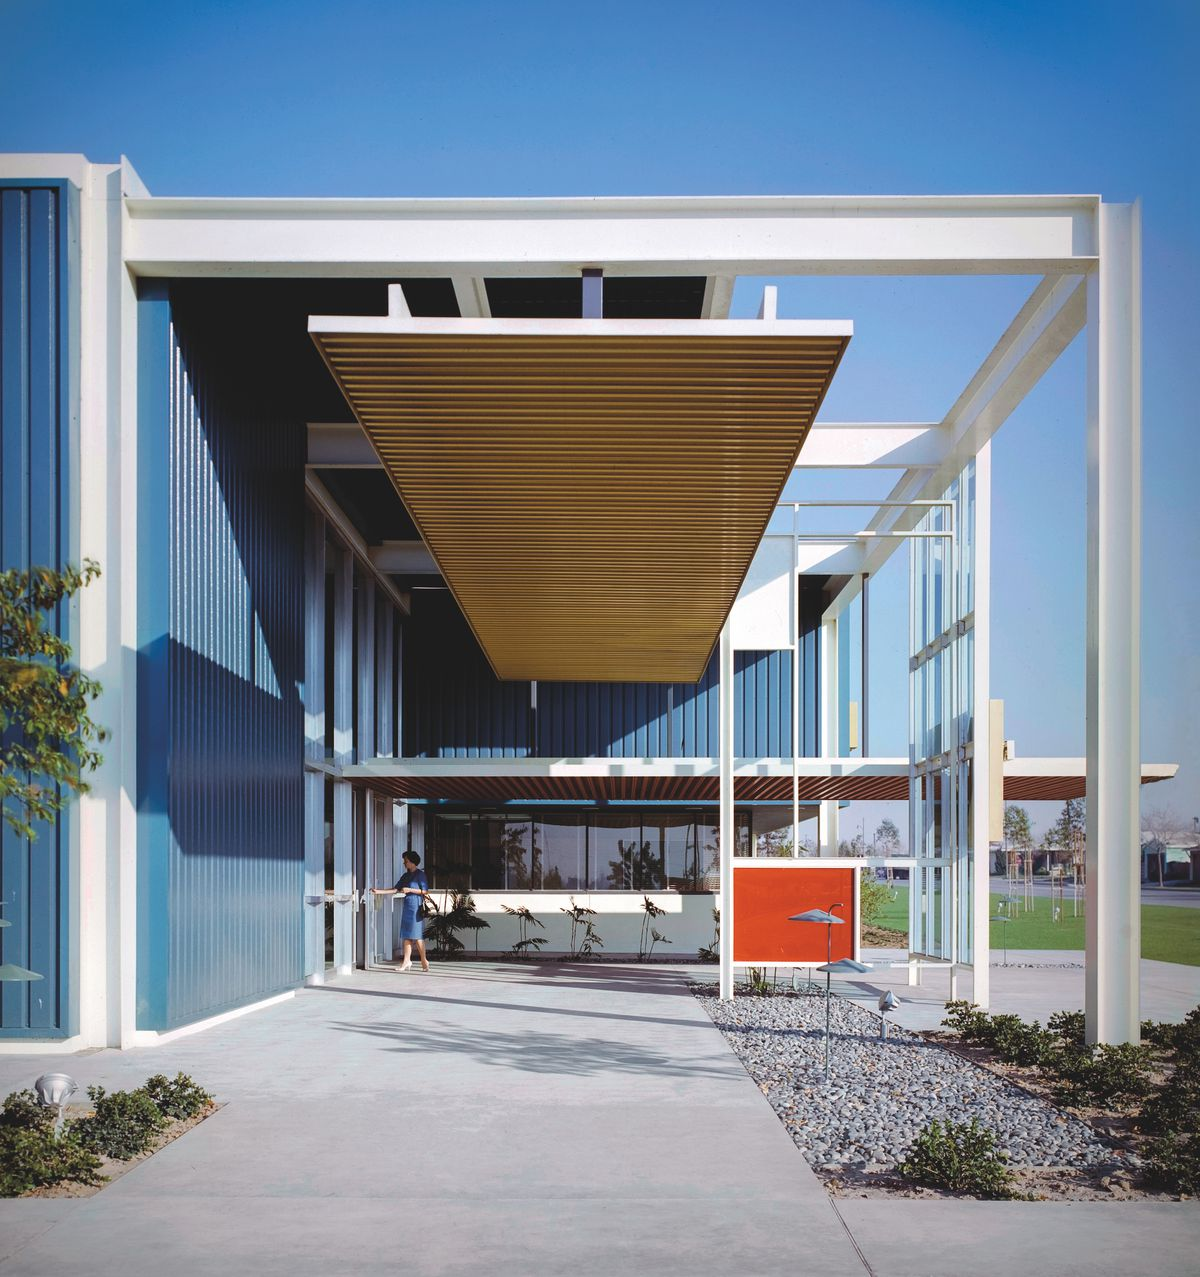 A boxy midcentury office building with blue walls and white-painted framing.